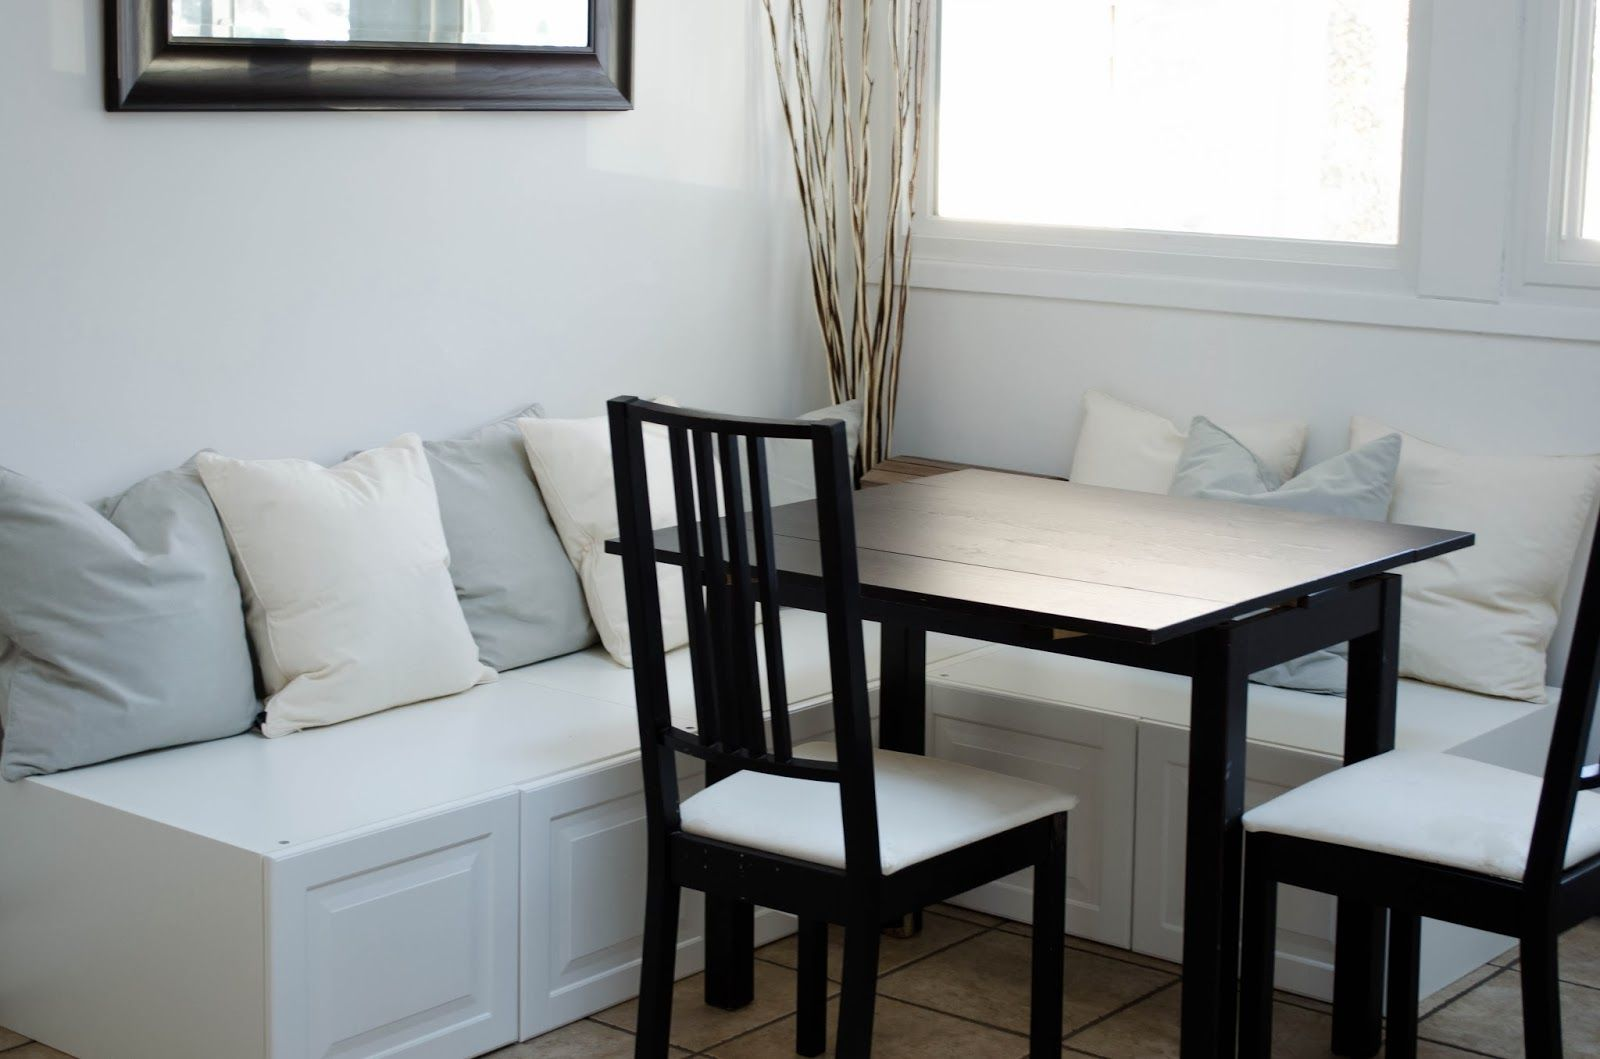 Easy DIY Breakfast Nook - Ikea Hack | Breakfast nook ...